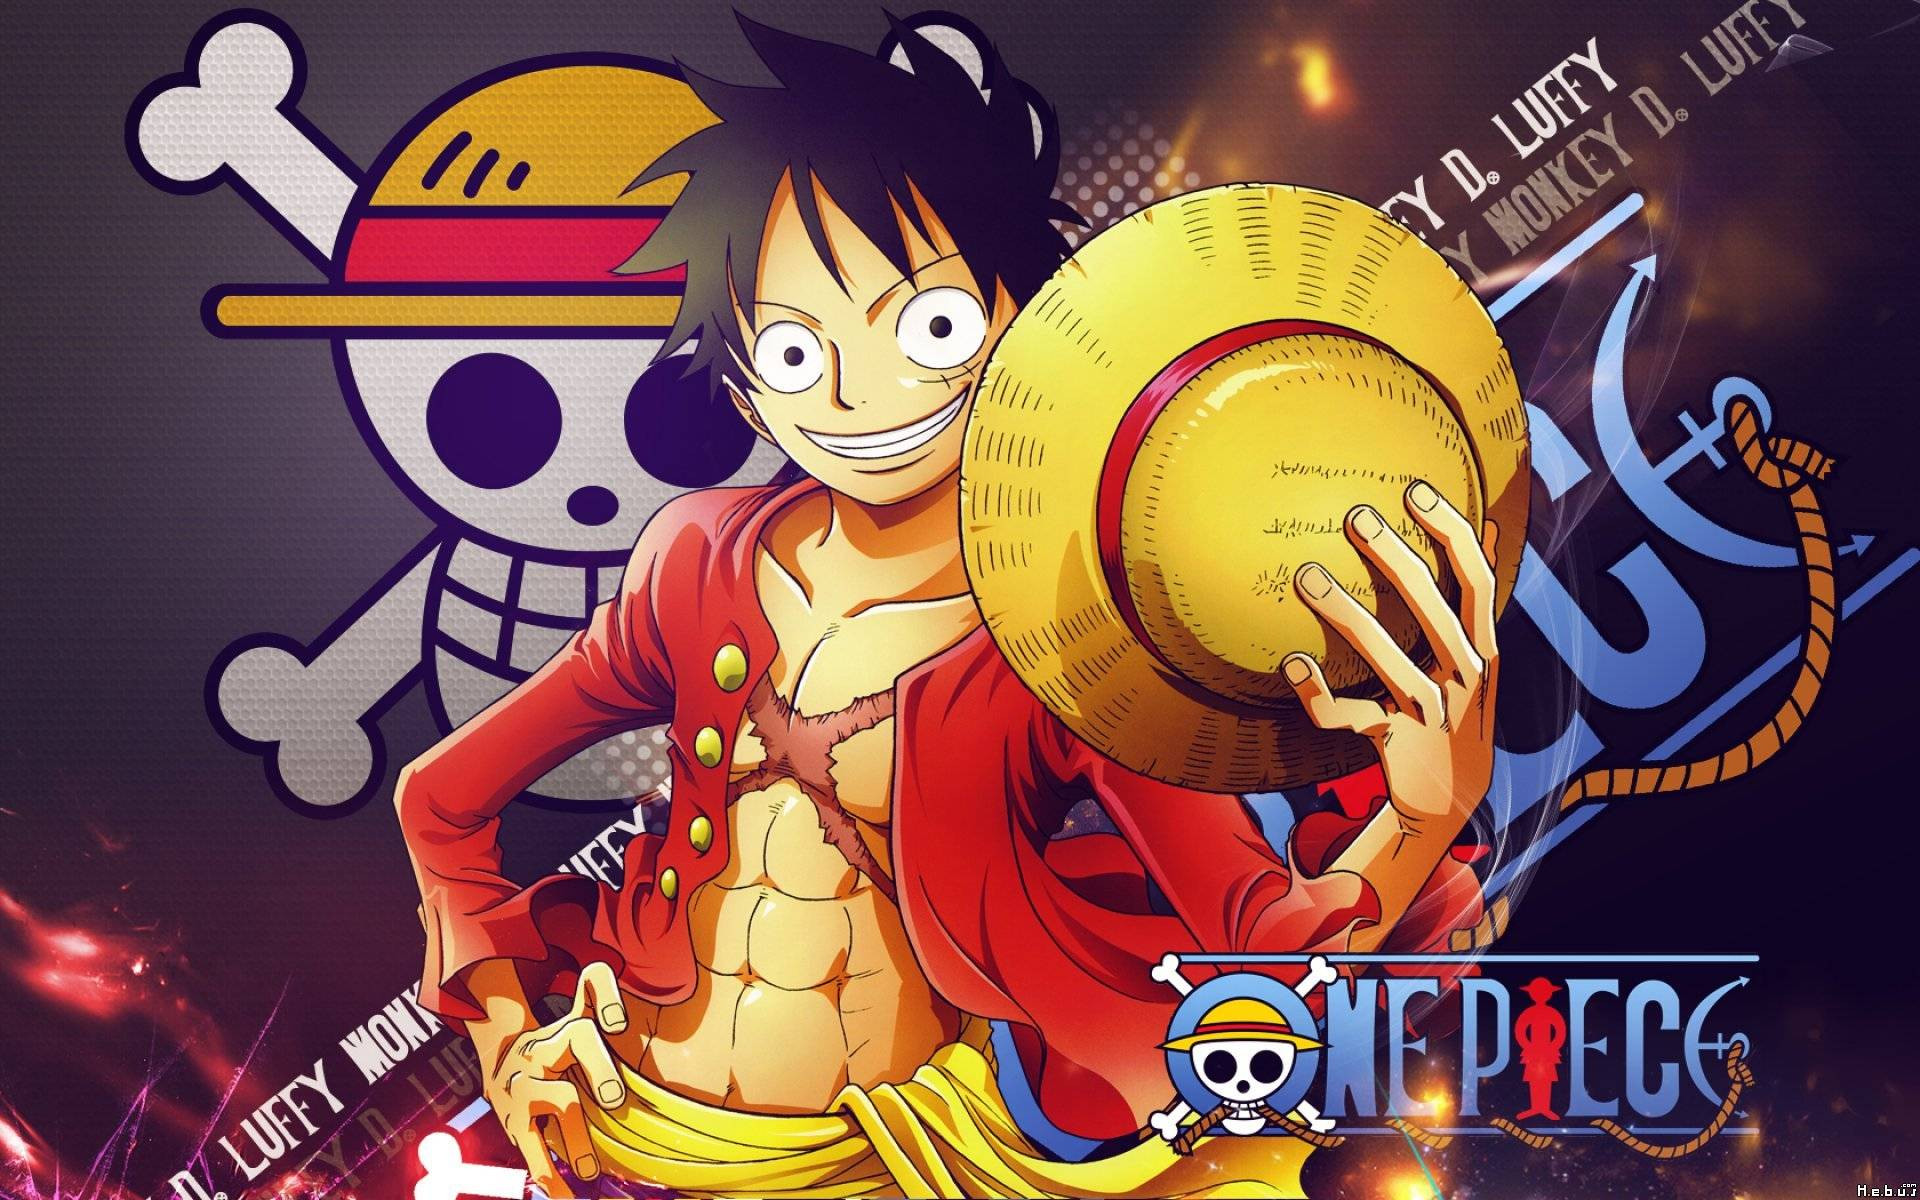 one piece Monkey D. Luffy HD manga anime widescreen desktop wallpapers free download